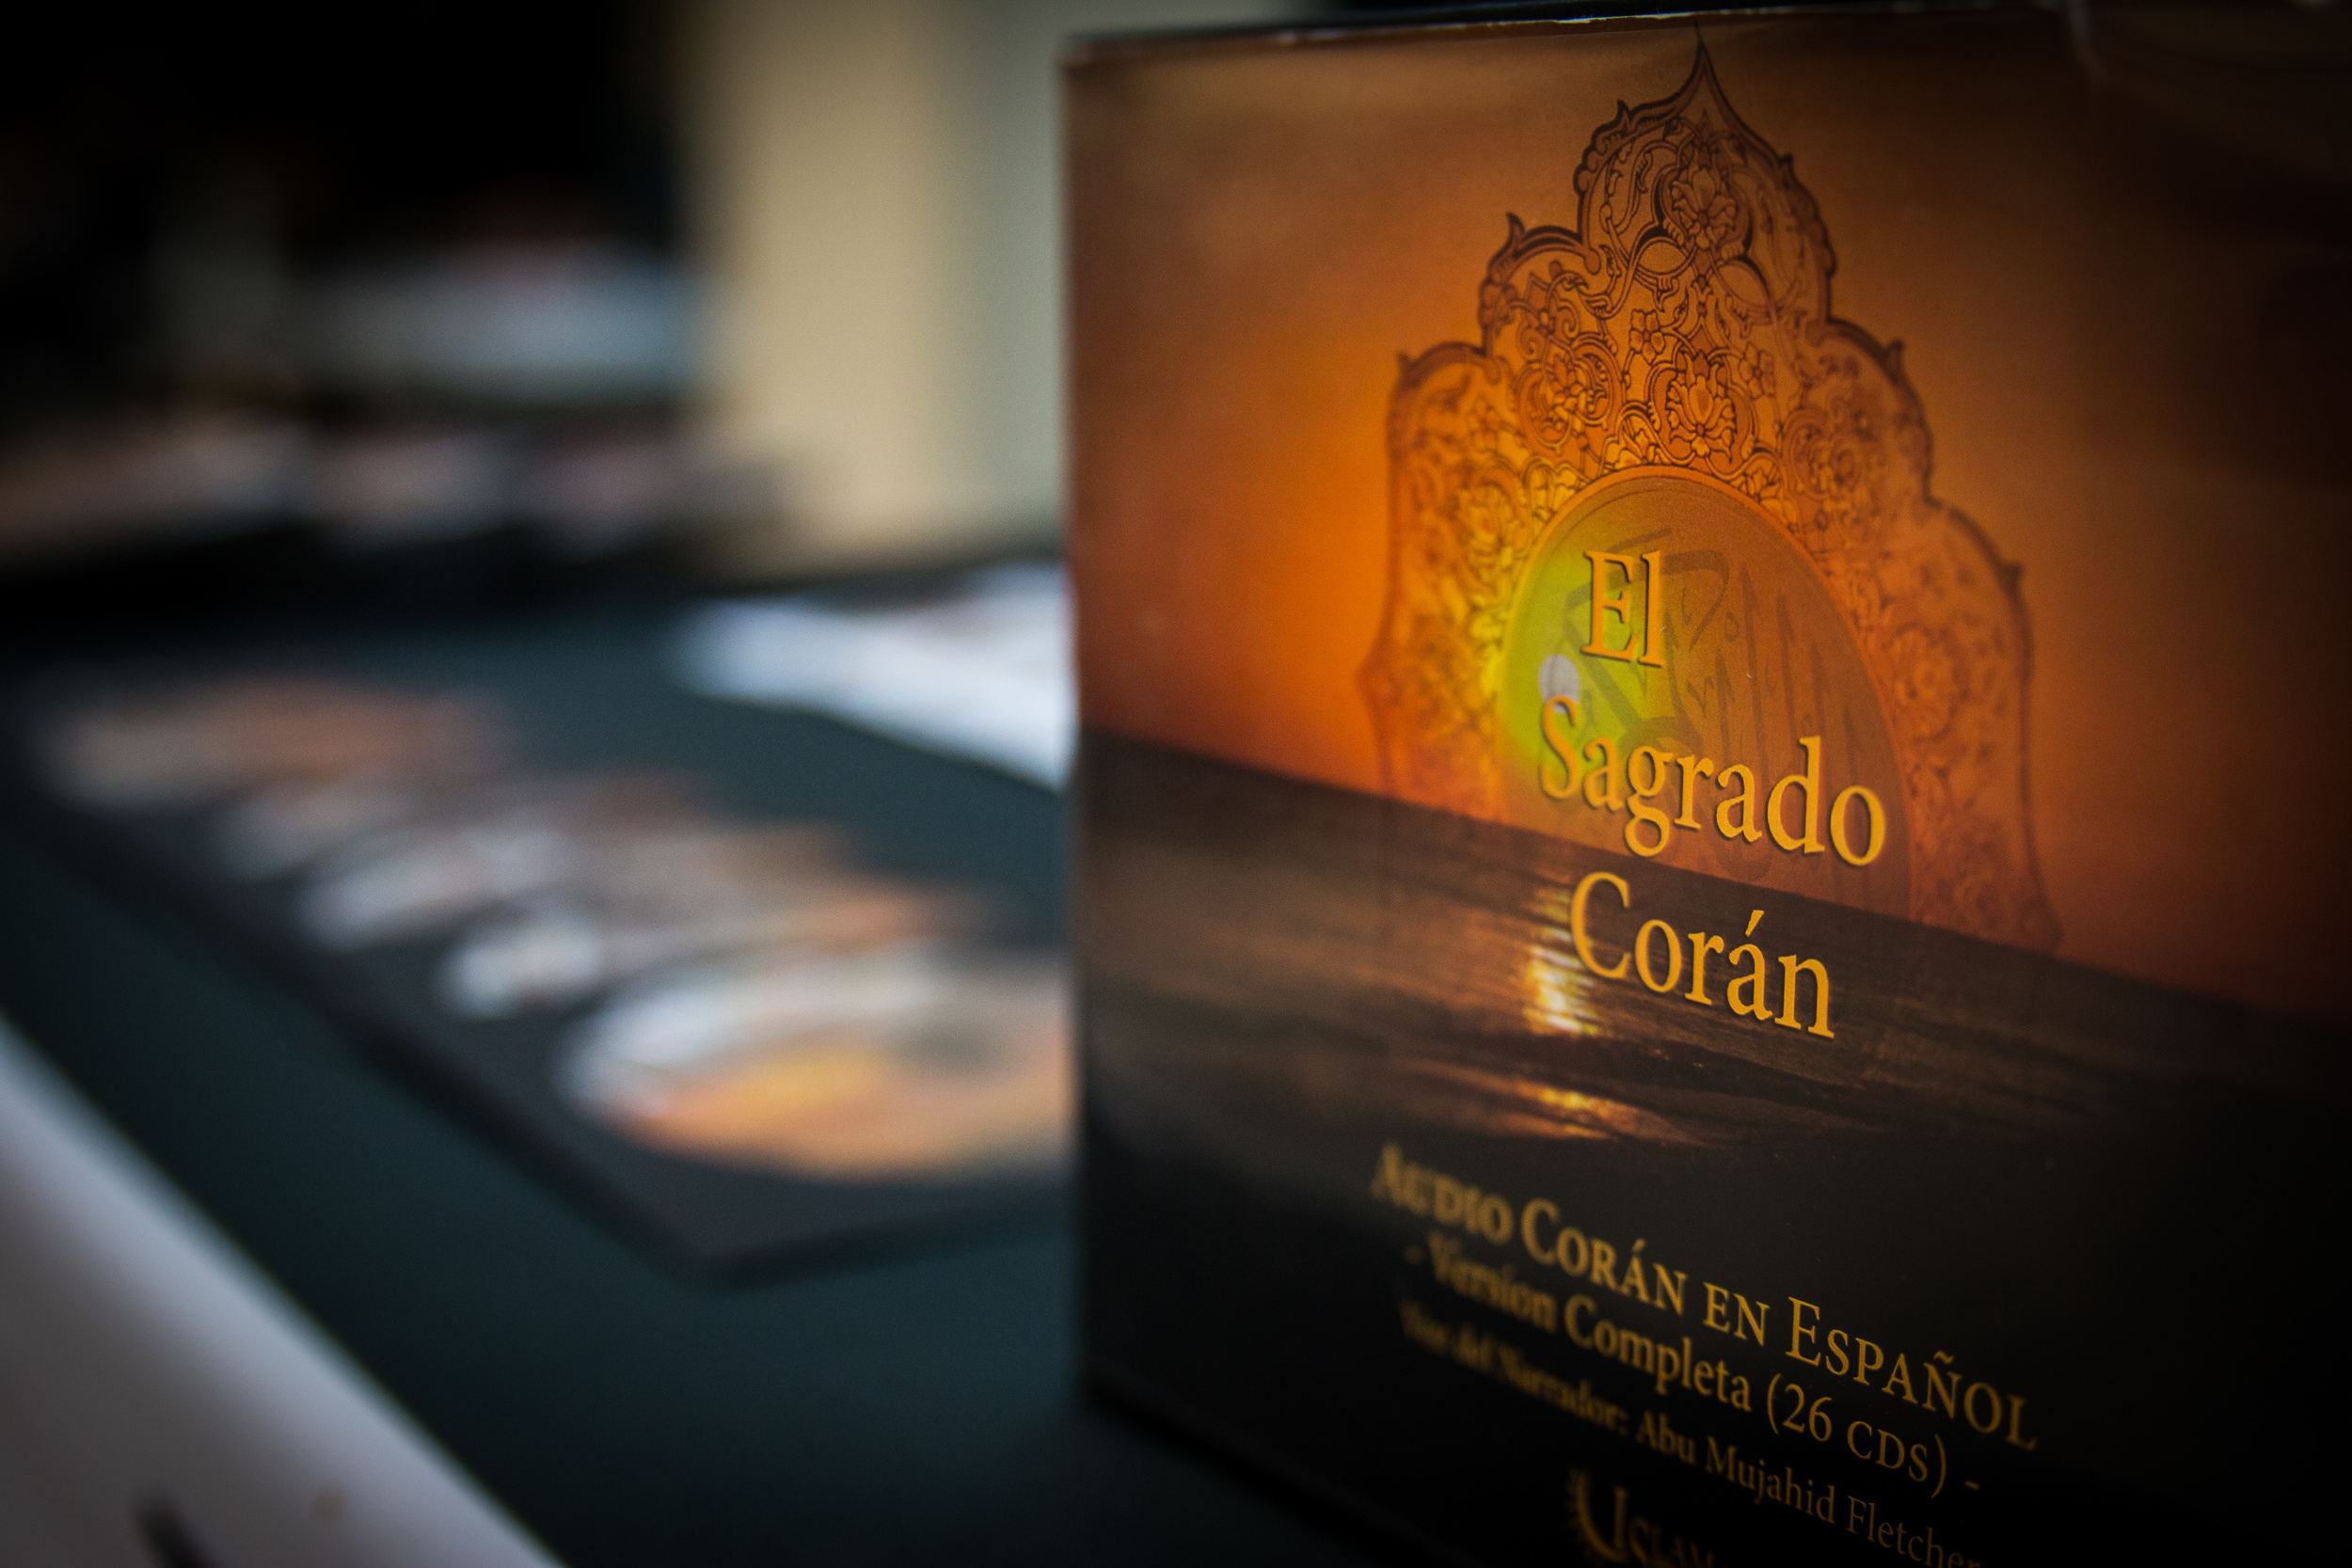 - The death of a loved one Inspired the birth of IslamInSpanish audio. To date - IslamInSpanish has produced over 500+ audio books in the Spanish language. Translated from classical content never before translated from Arabic to Spanish.